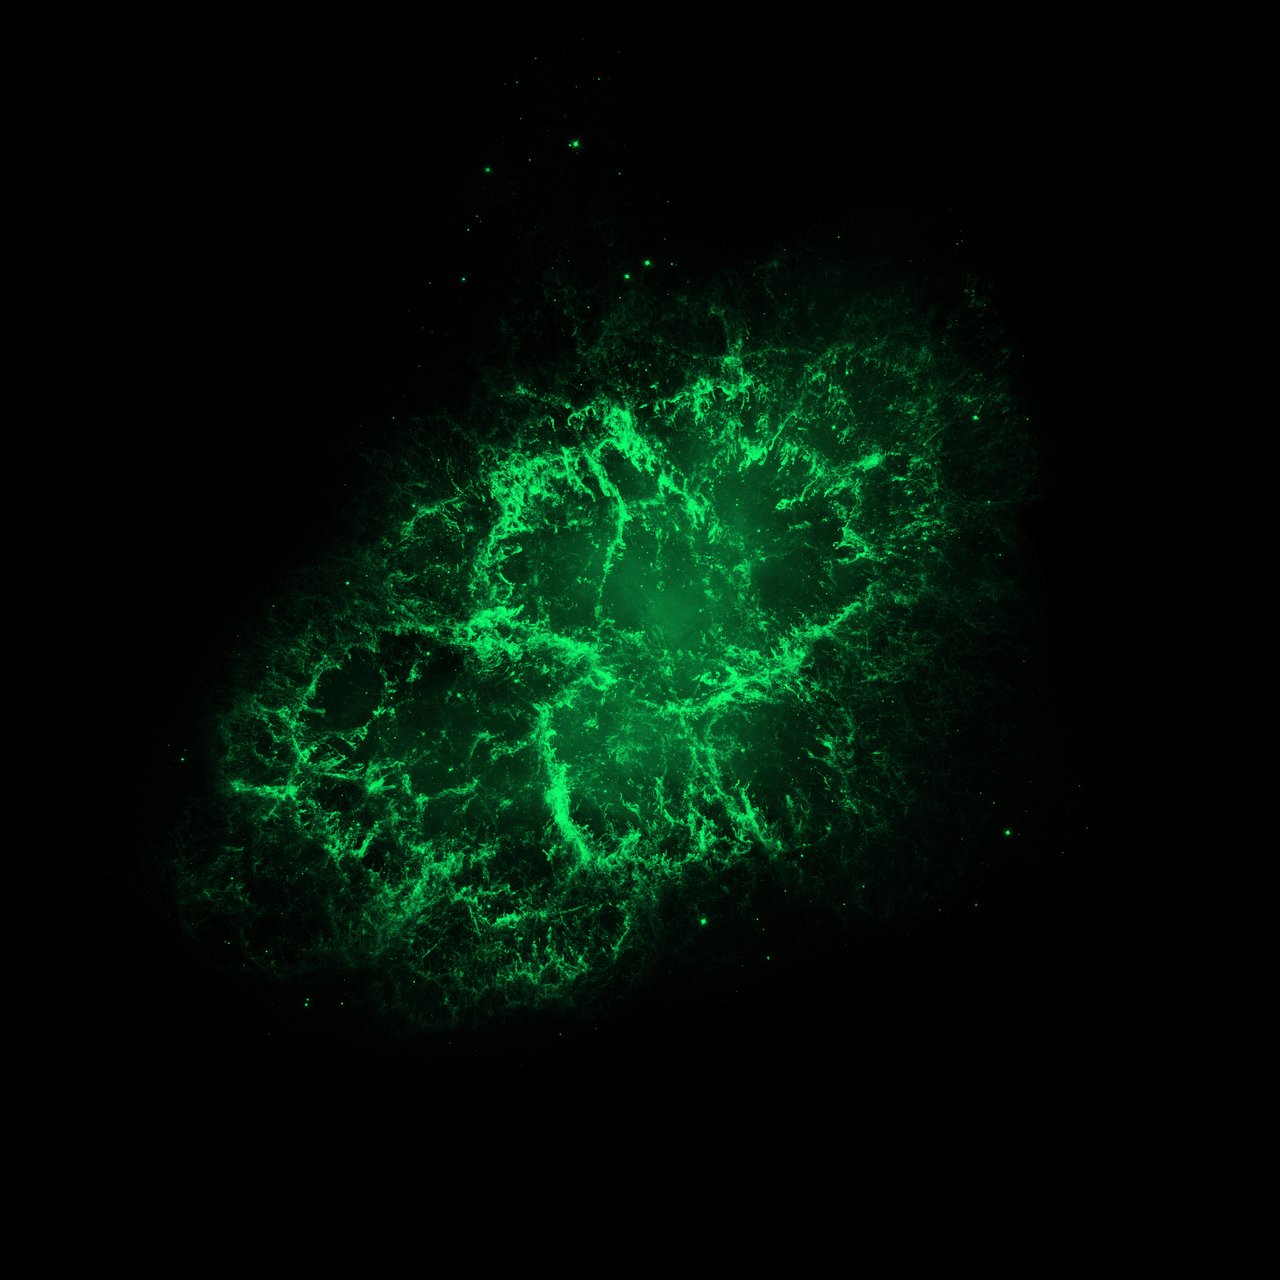 crab nebula visible - photo #3